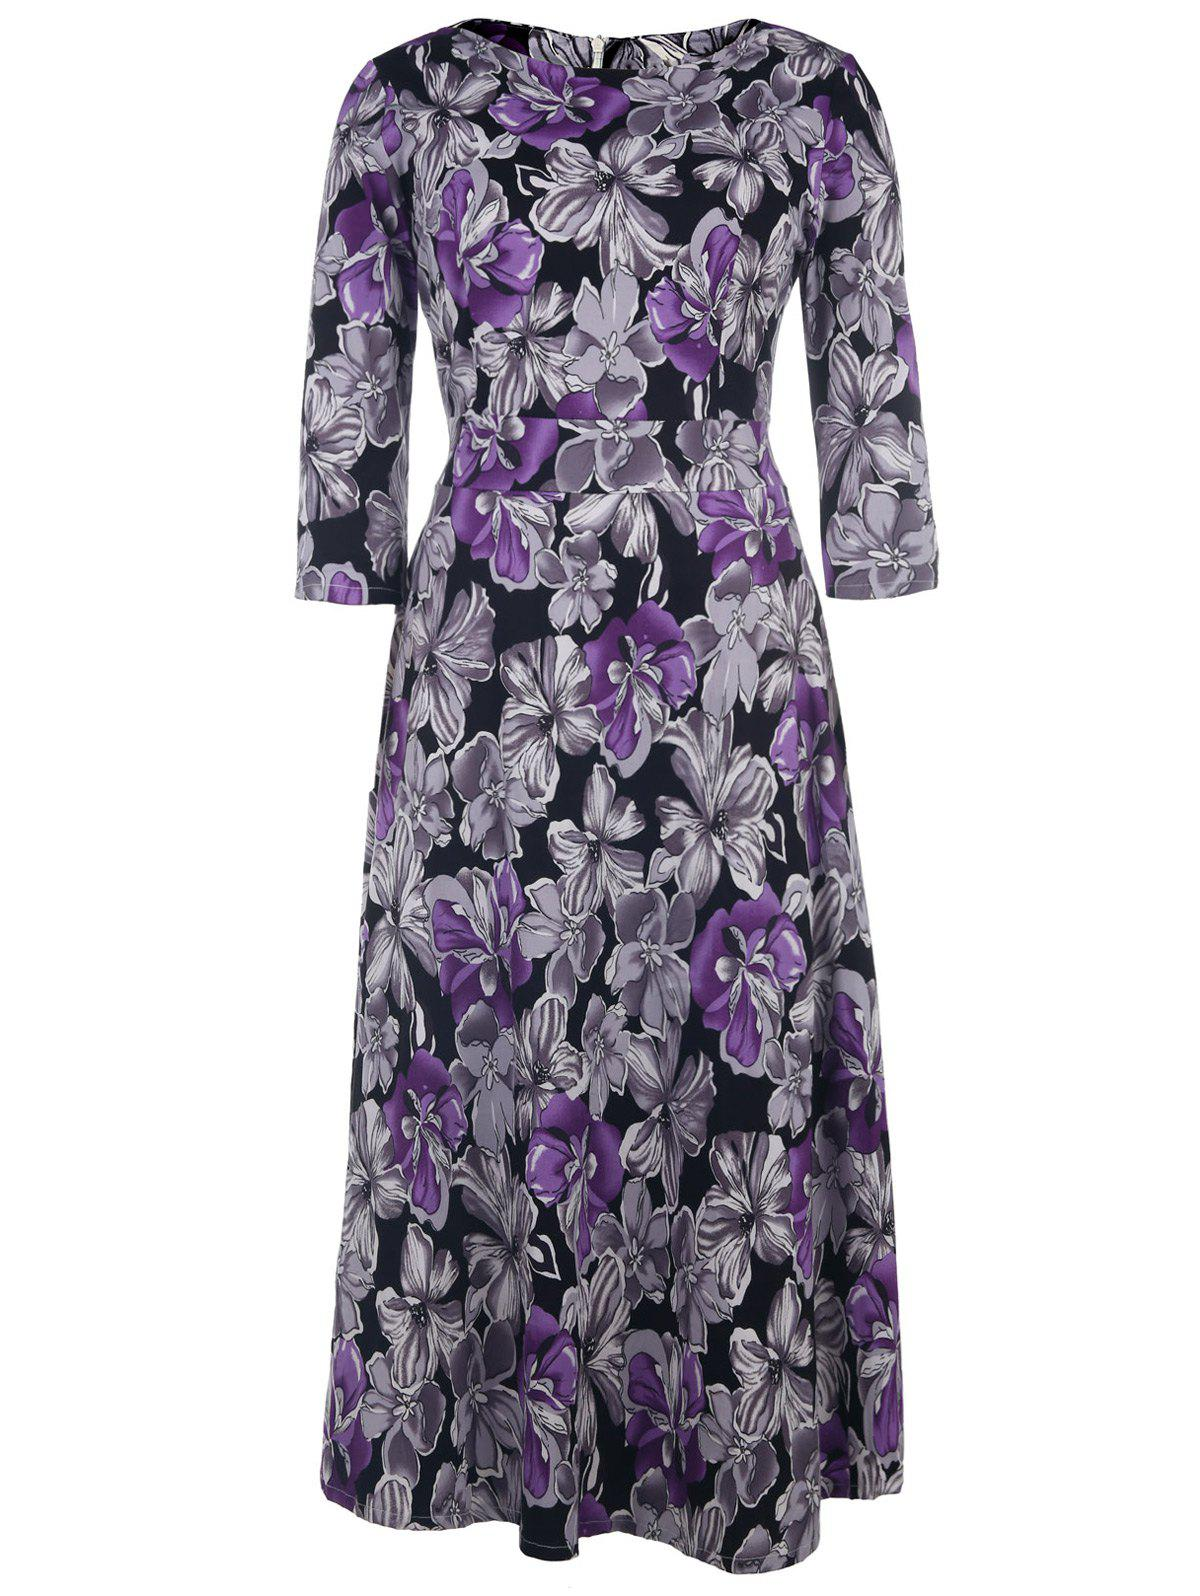 Vintage Style 1/2 Sleeve Round Neck Purple and Gray Flower Pattern Women's Dress - PURPLE L